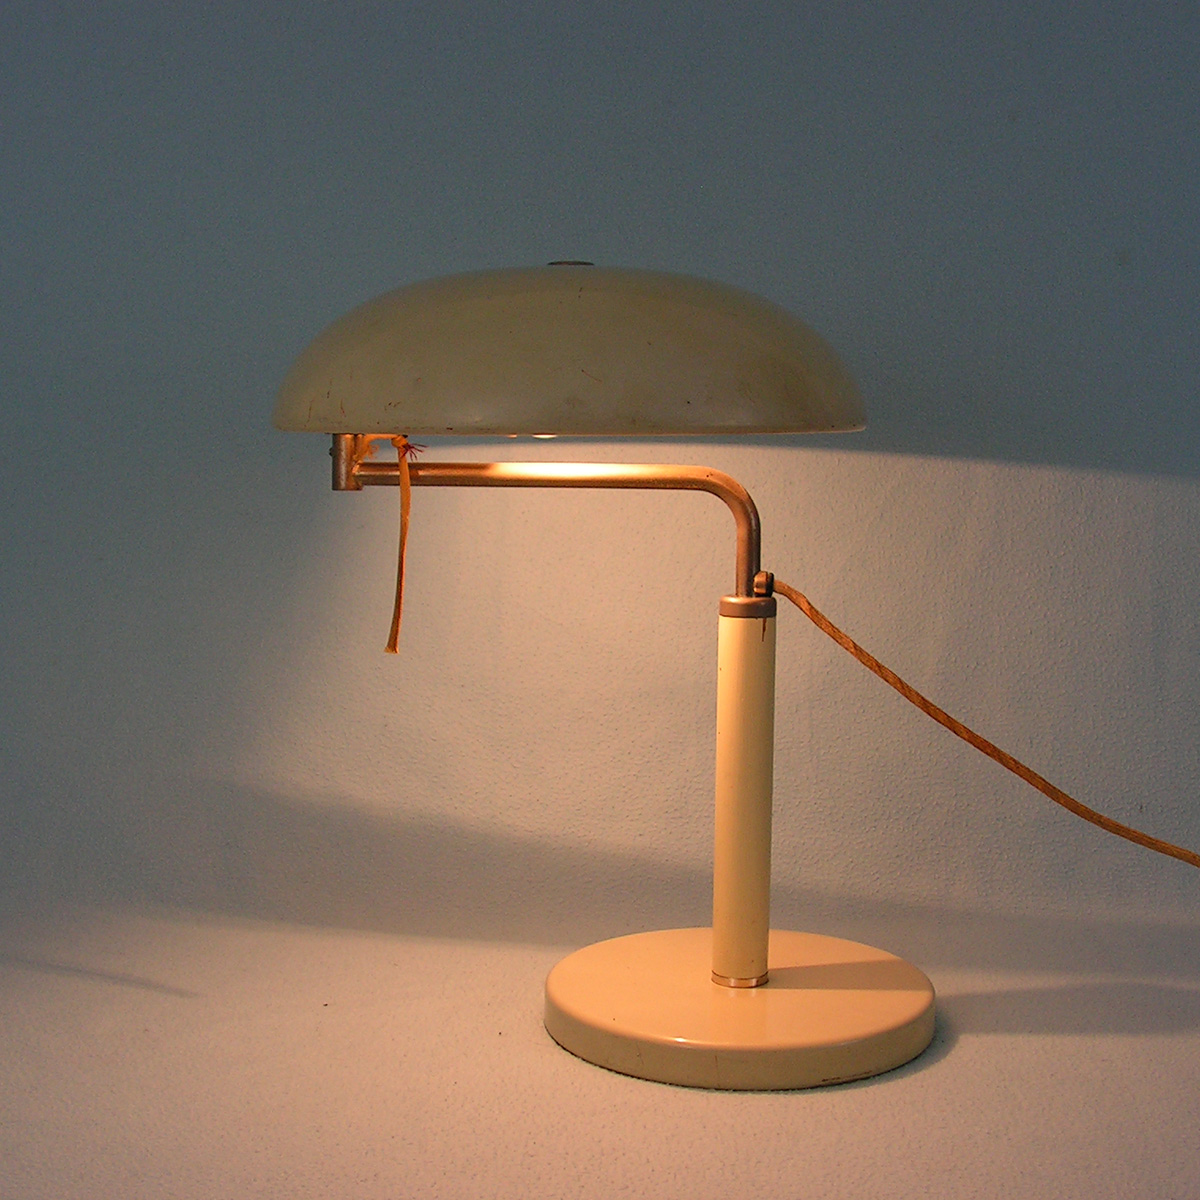 belmag-quick-1500-muller-desk-lamp-swiss-vintage